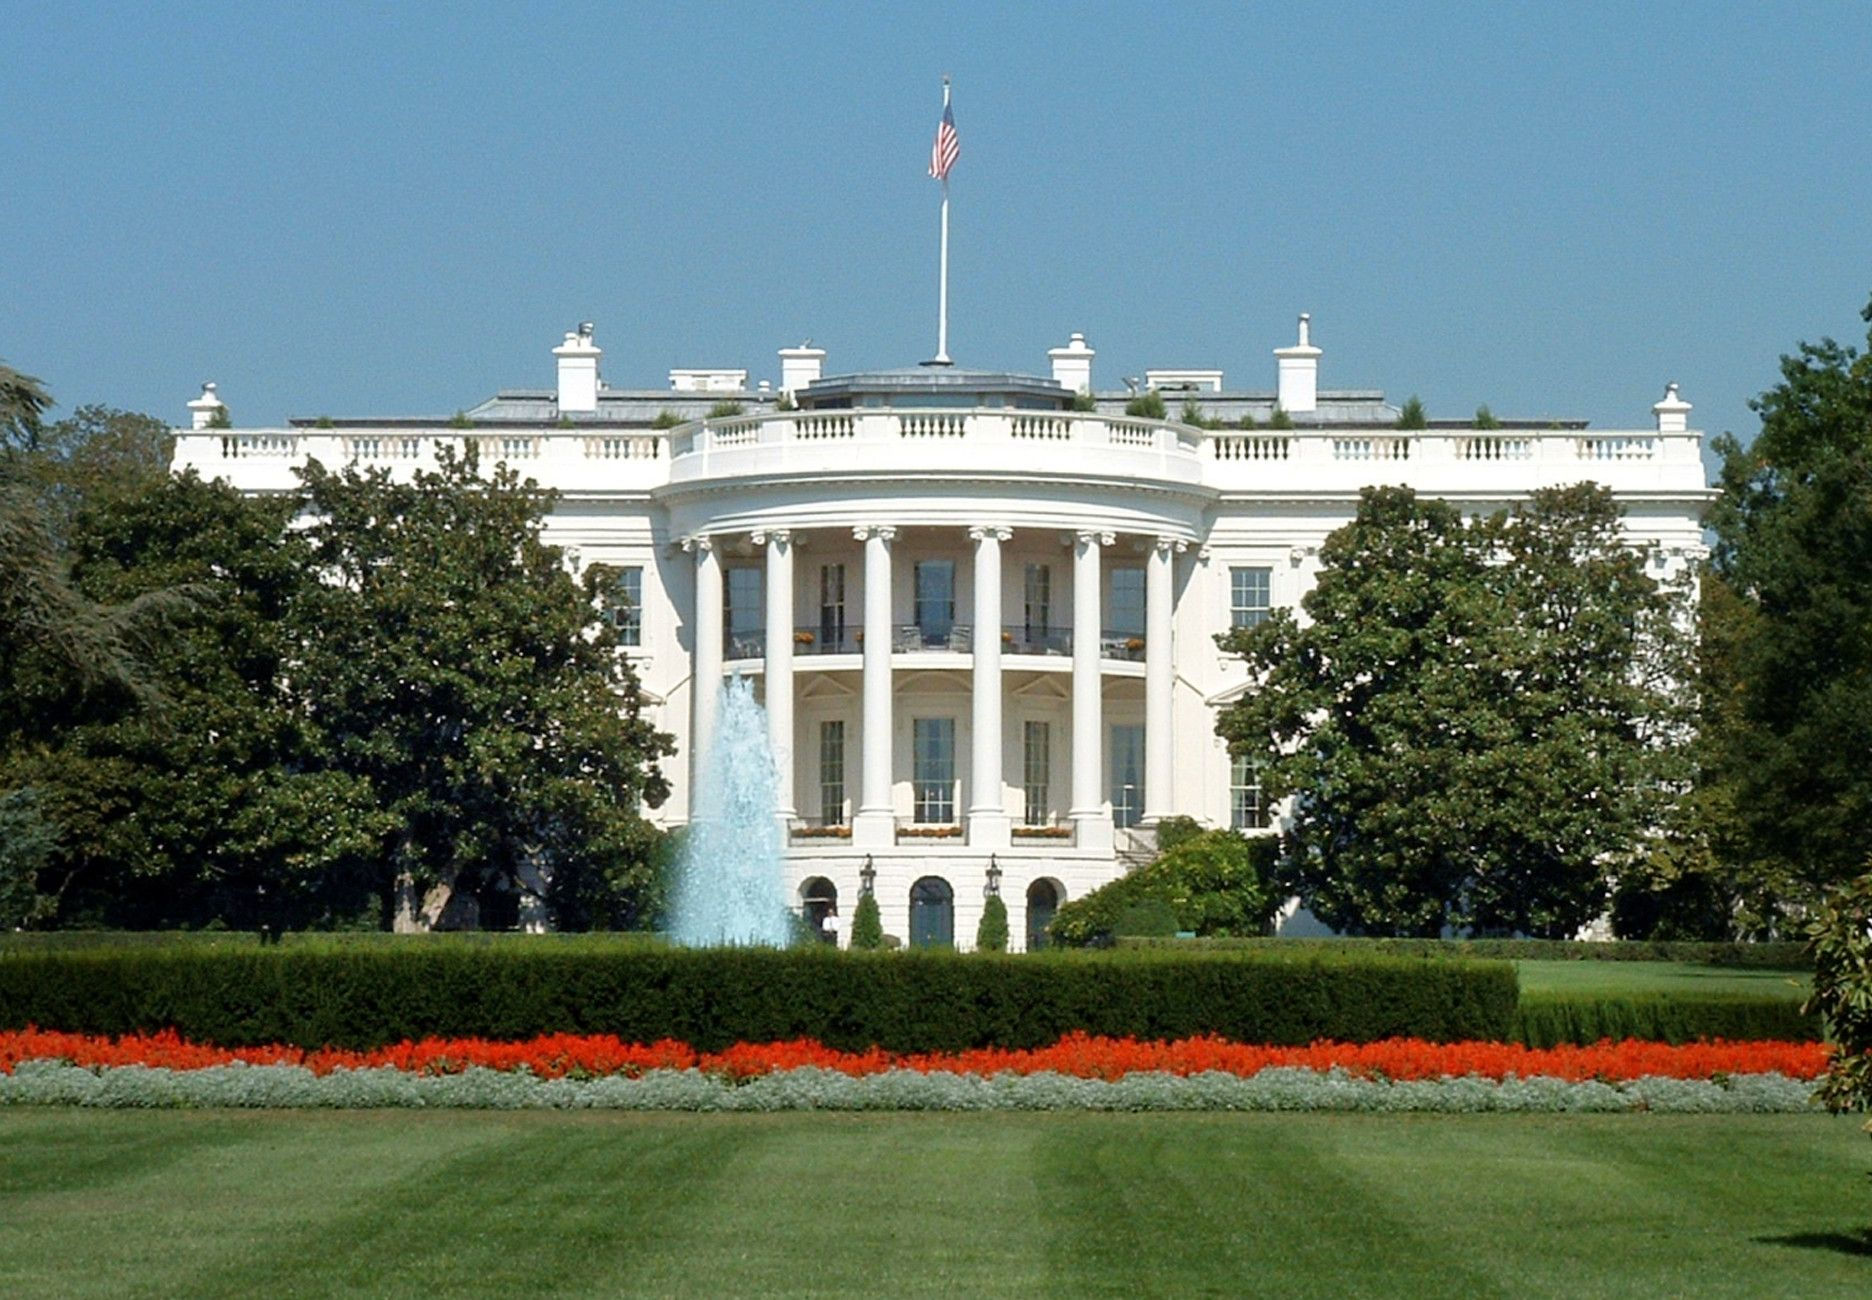 Things to do in Herndon, VA – The White House